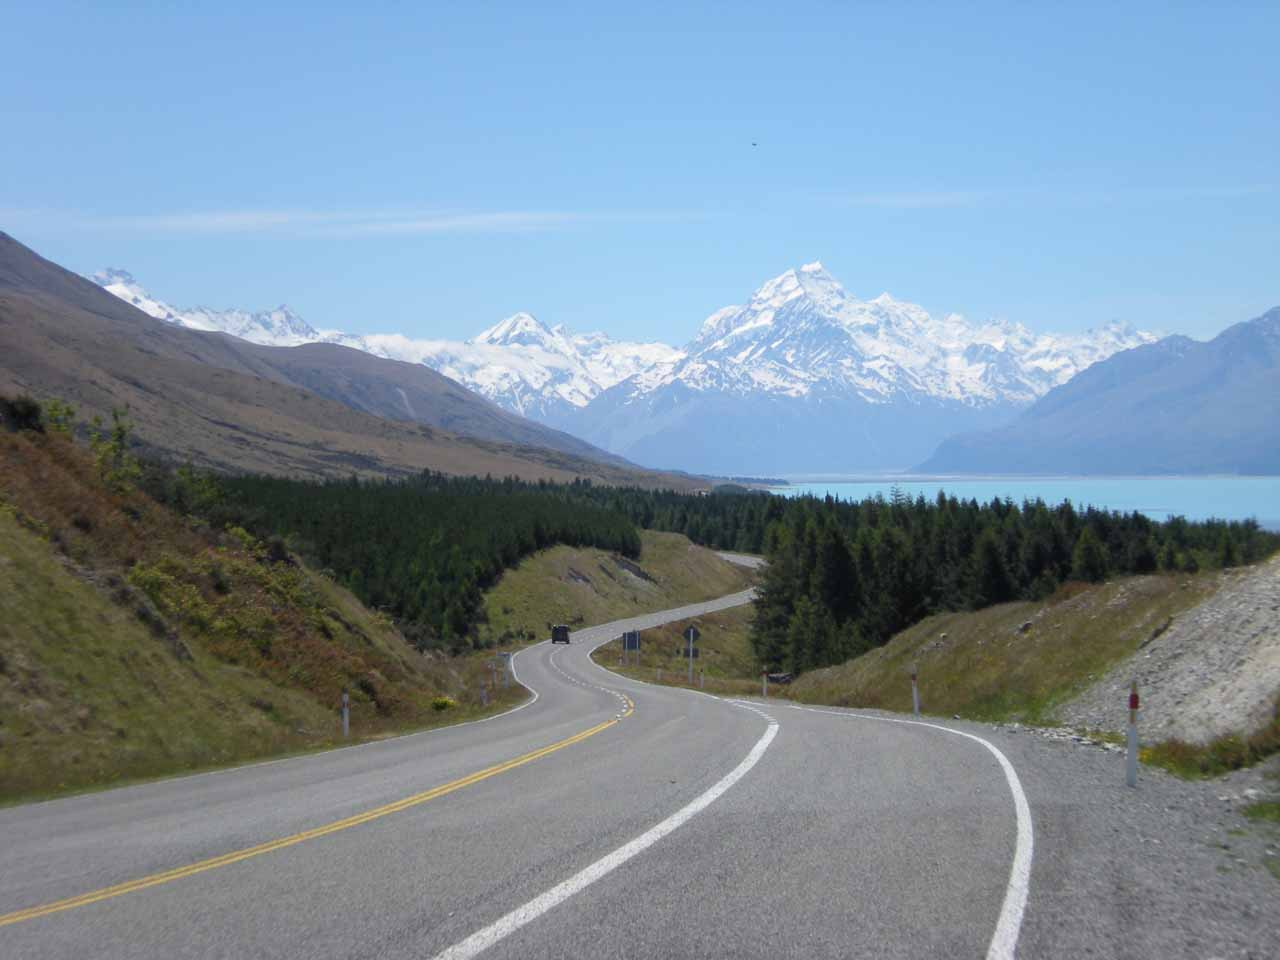 Then, we followed the Mt Cook Road past some more attractively colourful lakes towards Mt Cook itself